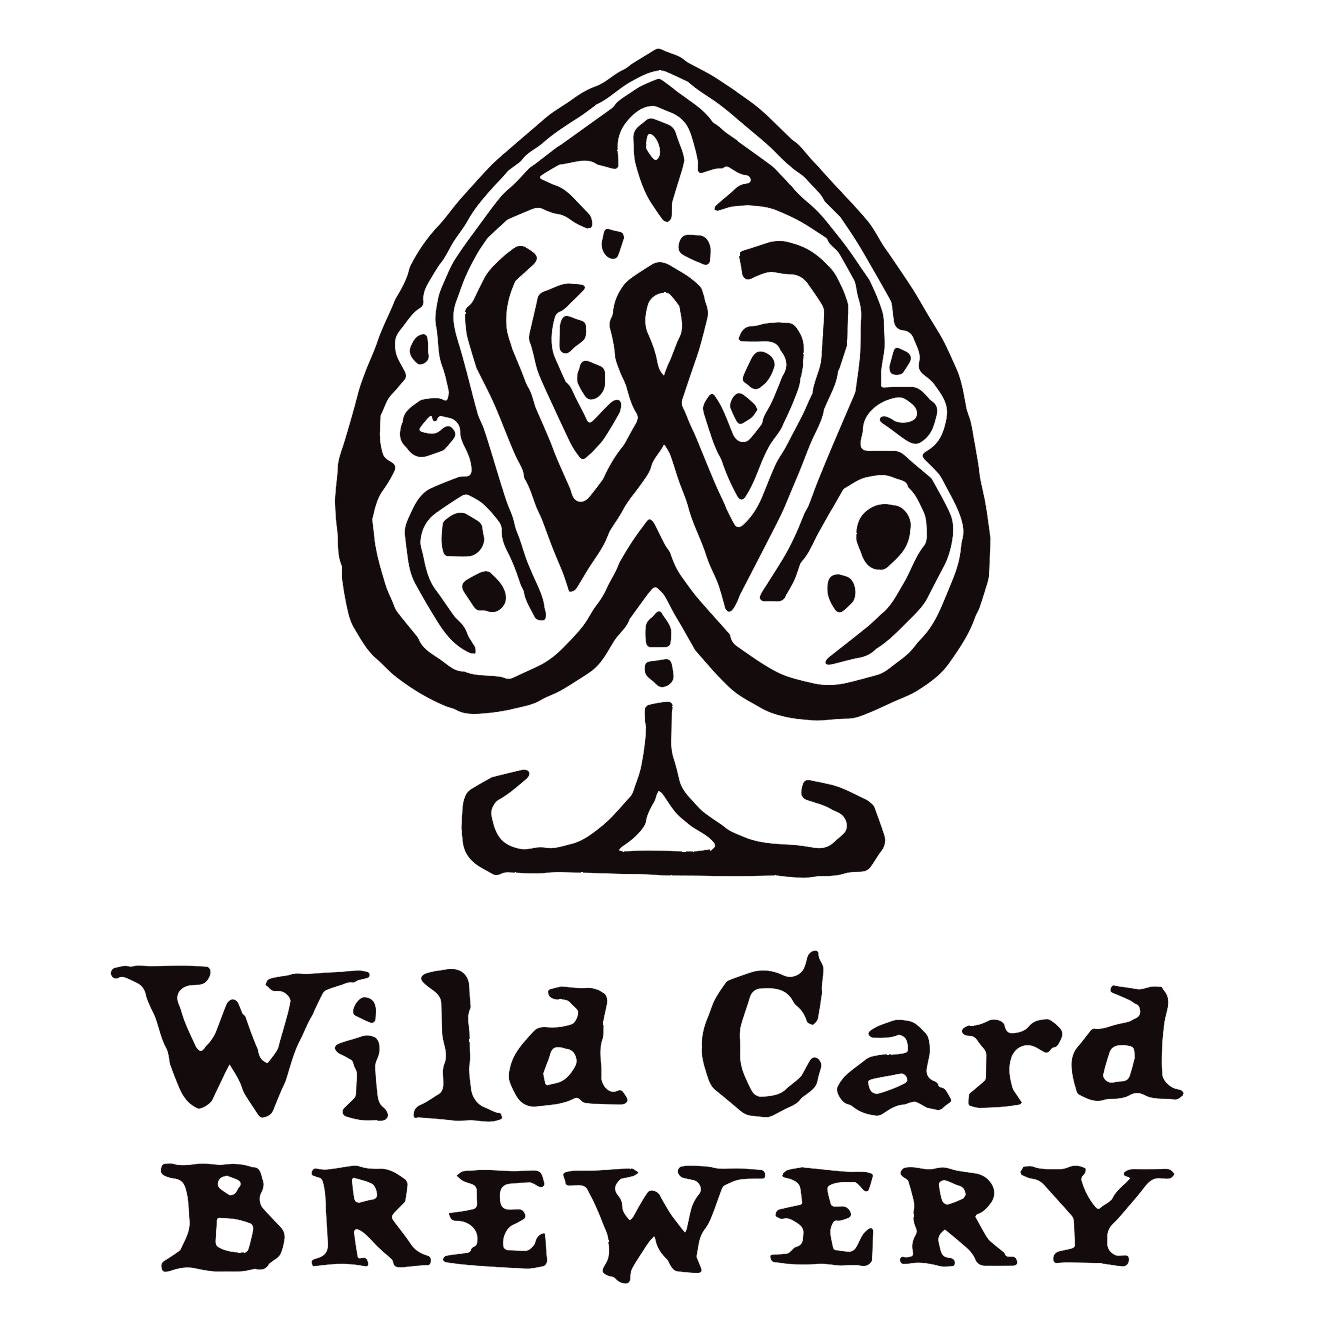 Brewing in Walthamstow since 2012,  Wild Card's  brewing team is led by Jaega Wise, who has an enviable background in Chemical Engineering. The brewery's core range of IPA, Pale and Lager is now in striking-looking cans, and they also release one-off specials including Double IPAs, Berliner Weisses and more!